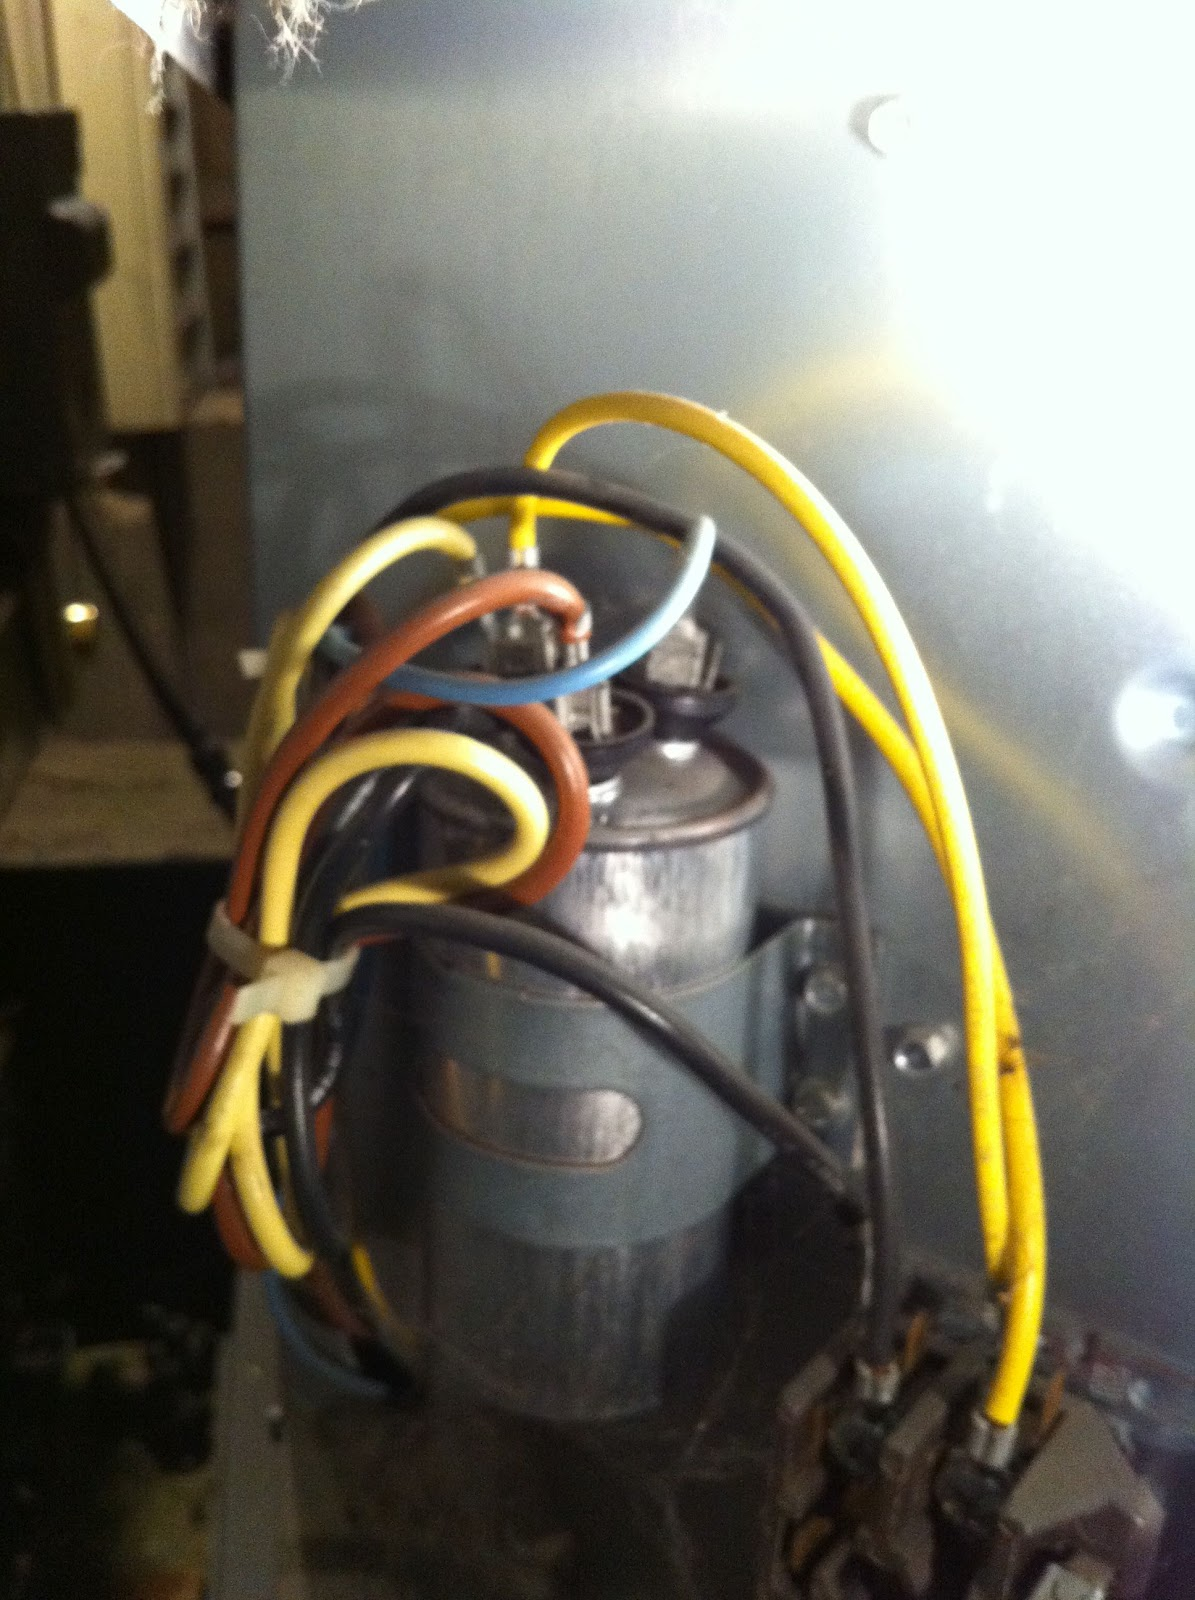 How To Replace Starter Capacitor On Ac Condenser Unit Share Your Start Wiring The Starting